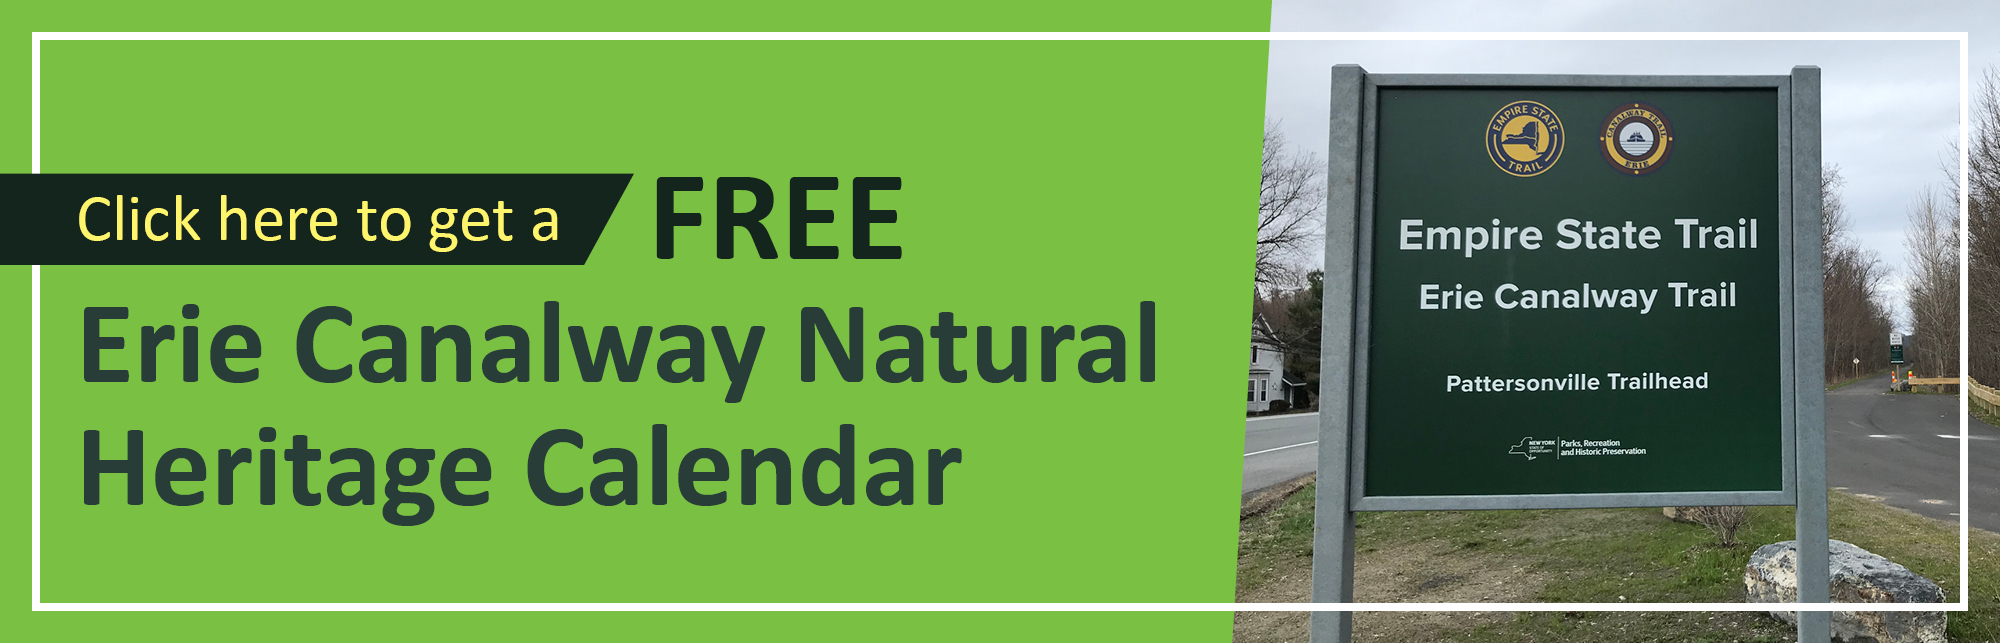 Erie Canalway Natural Heritage Calendar